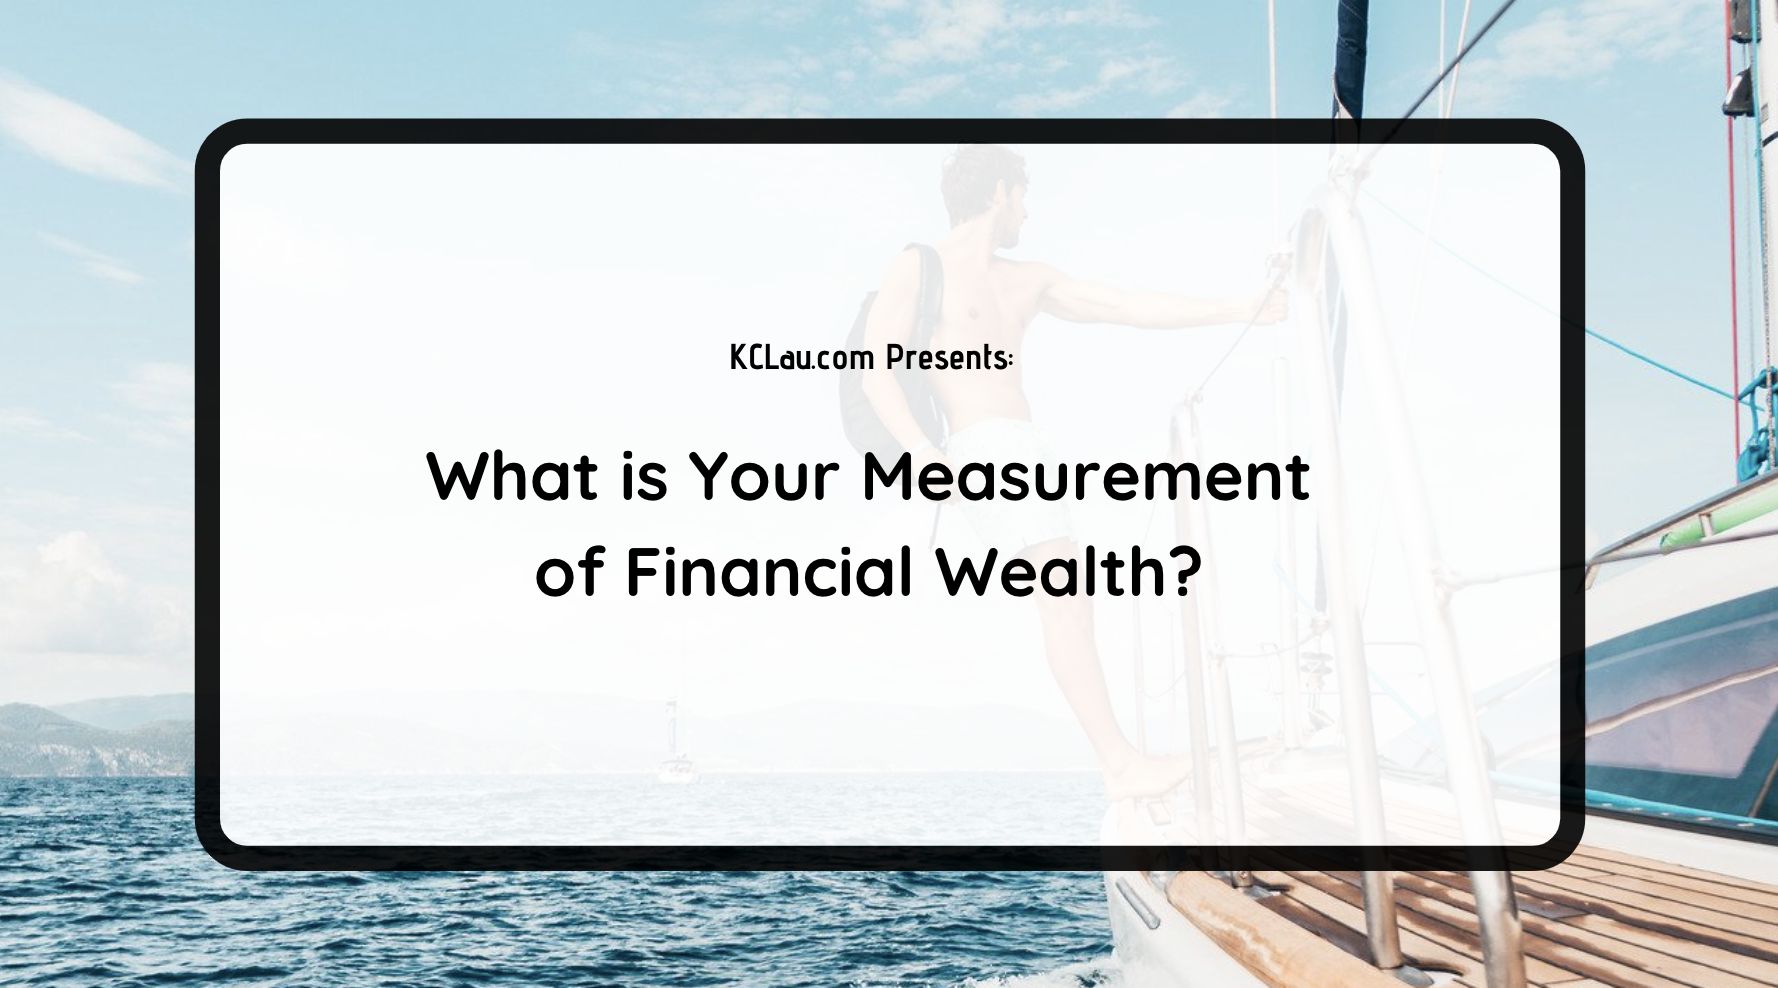 What is Your Measurement of Financial Wealth?